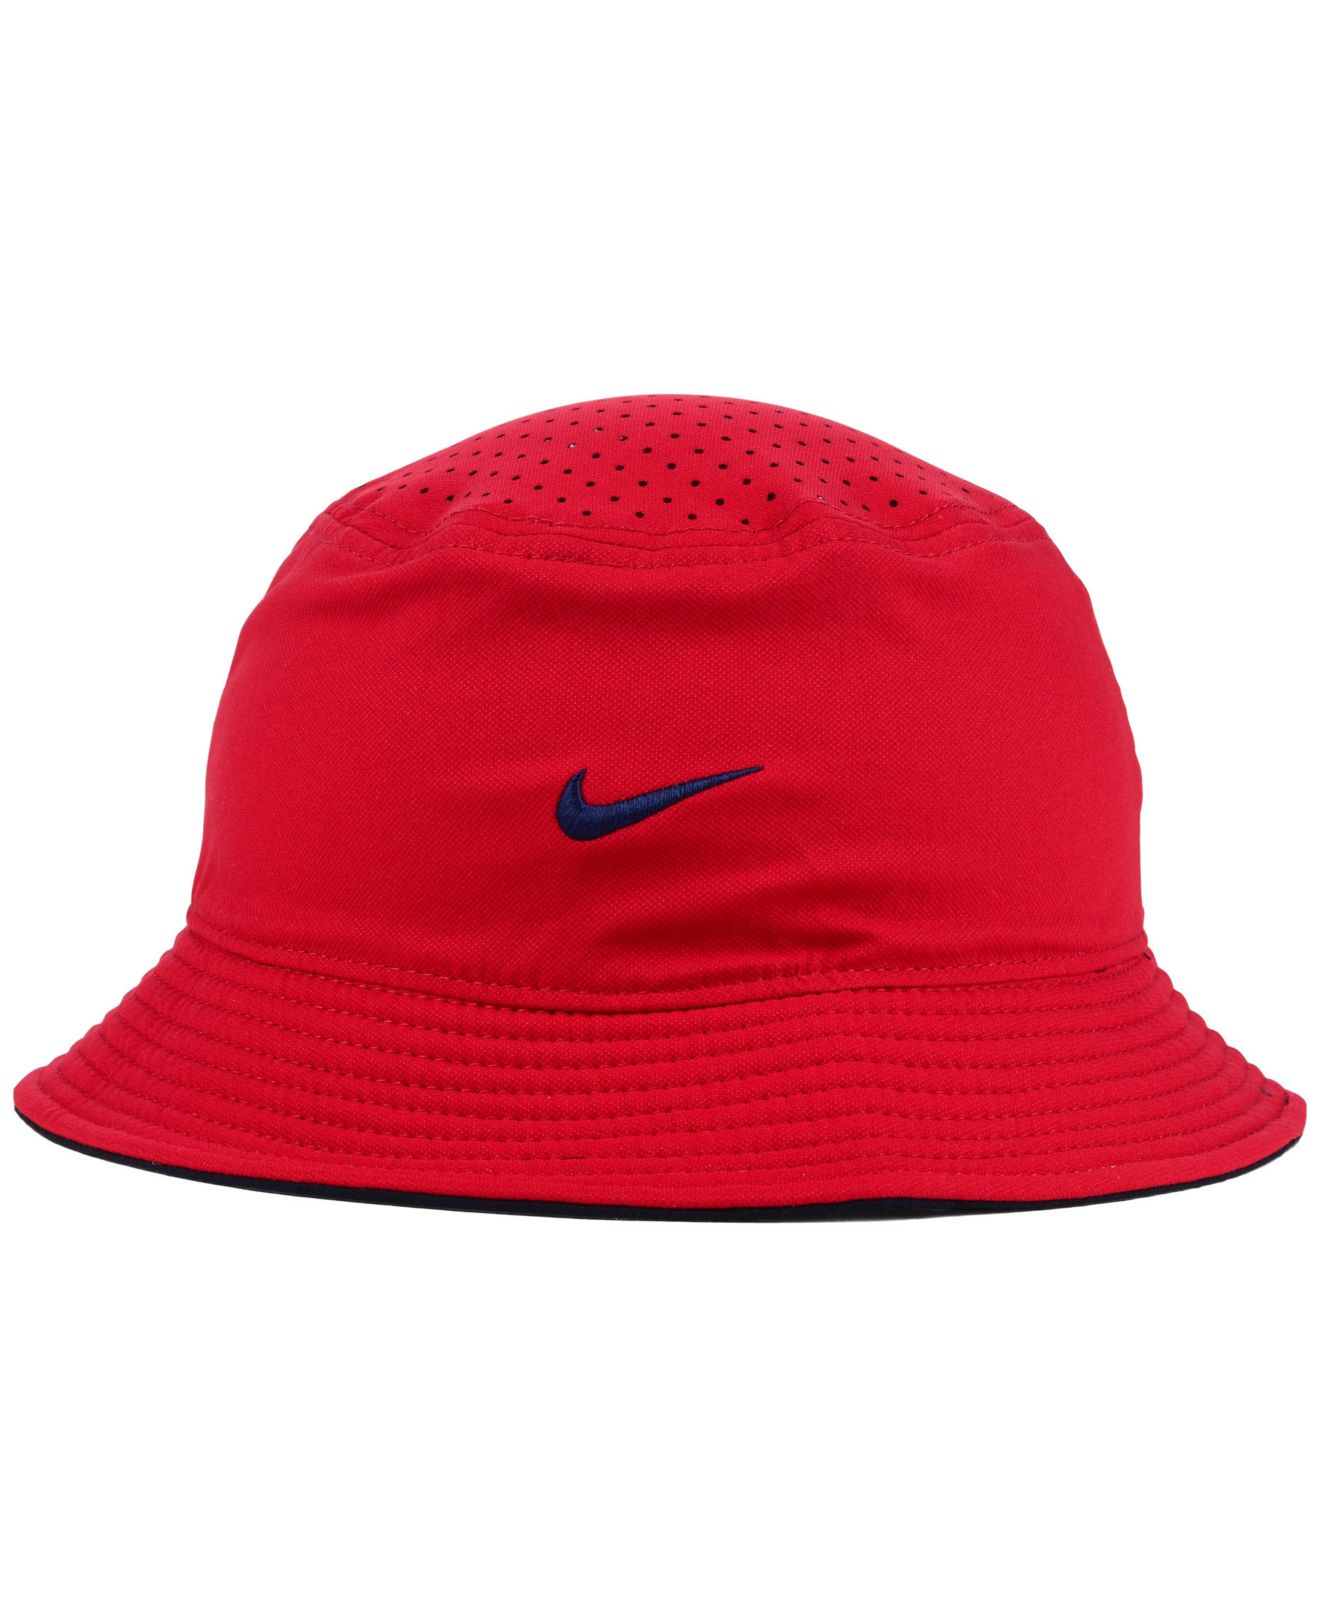 Lyst - Nike St. Louis Cardinals Vapor Dri-Fit Bucket Hat in Red for Men e8e53ebb3a5